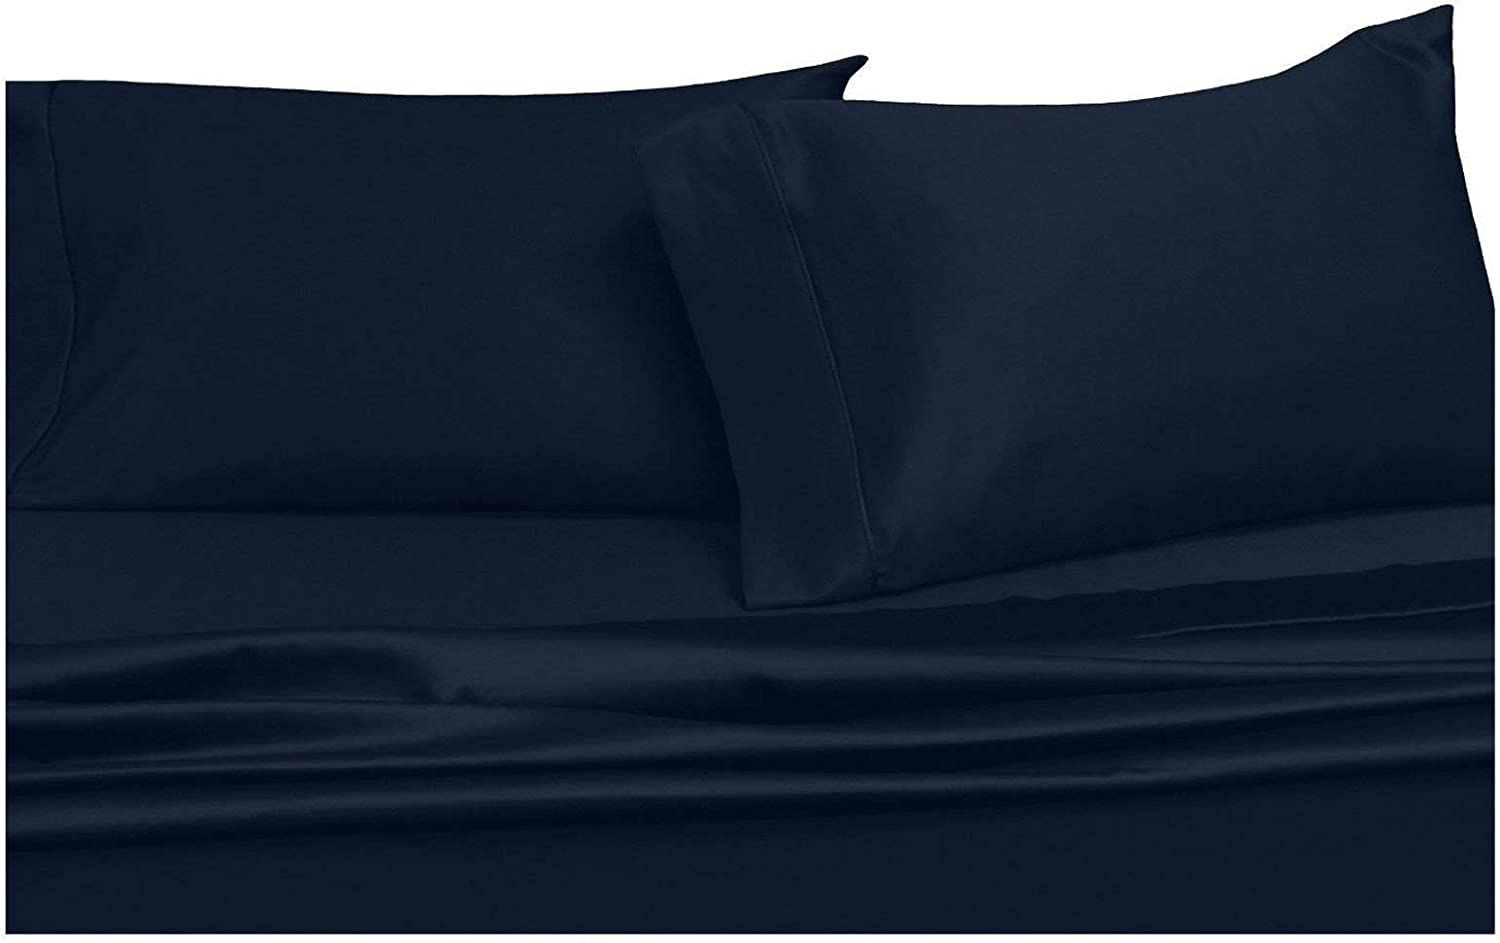 Royal Collection Ultra-Soft Sheets, Silky Soft Bed Sheets Set, Deep Pocket, Wrinkle and Fade Resistant, Hypoallergenic (Queen Navy)